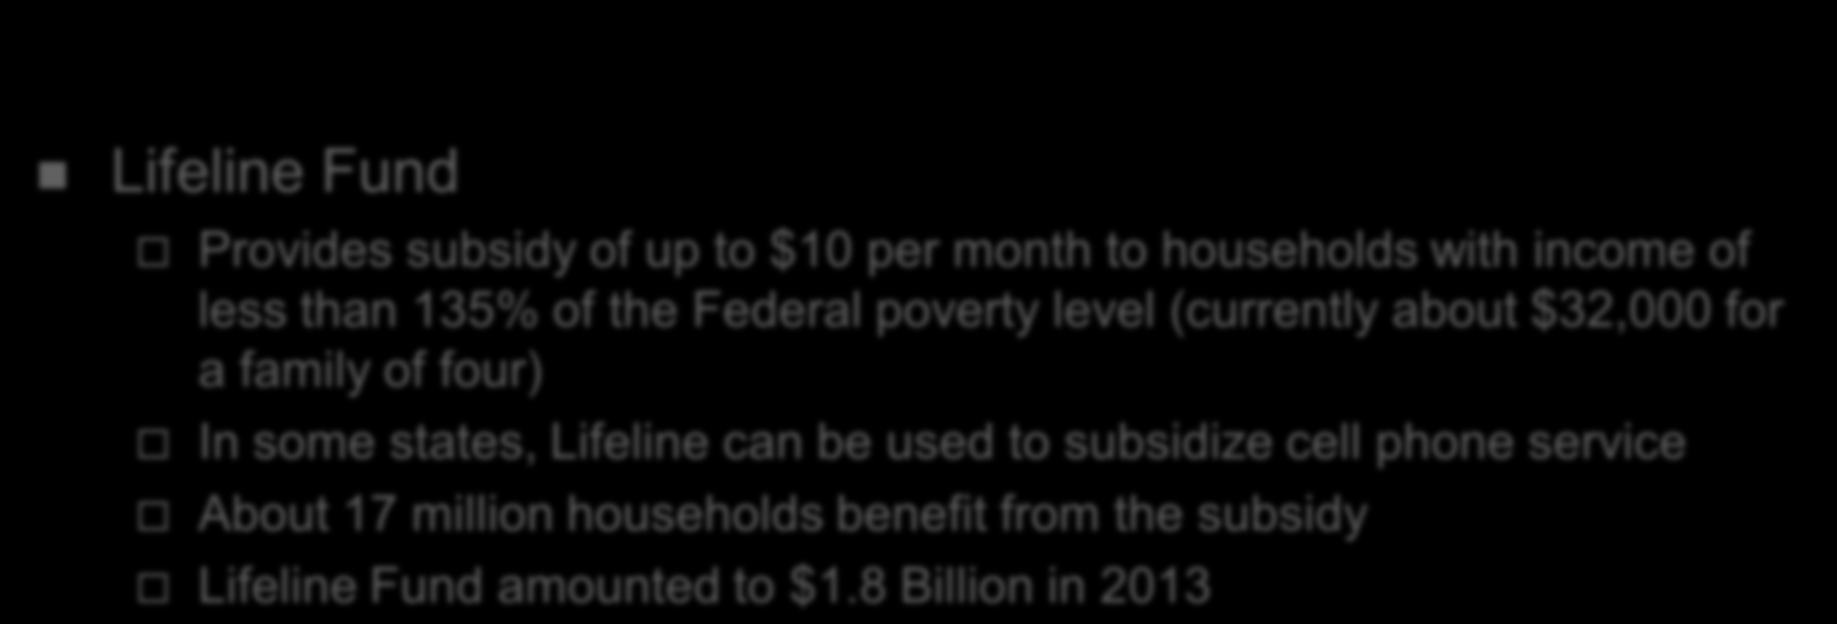 Universal Service in Telecom Act Lifeline Fund Provides subsidy of up to $10 per month to households with income of less than 135% of the Federal poverty level (currently about $32,000